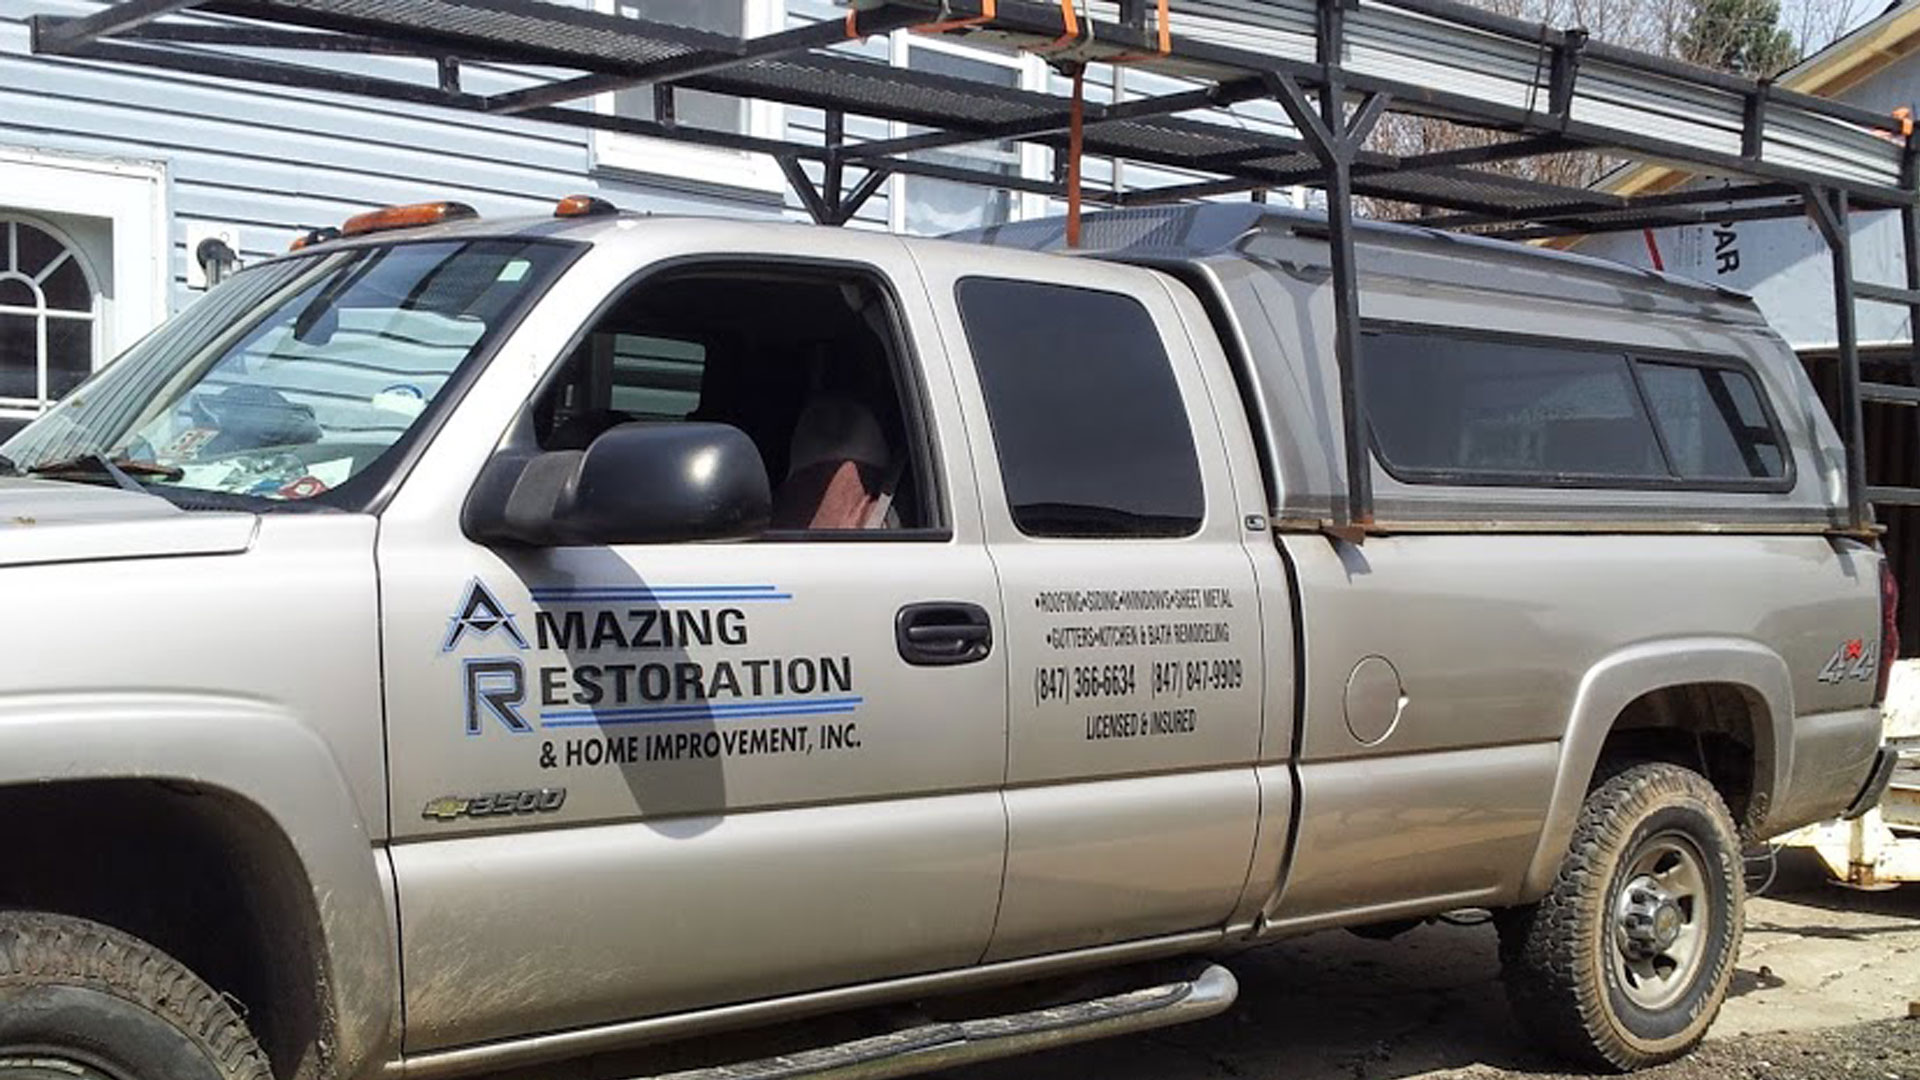 Carpentersville and surrounding areas Amazing Restoration & Home Improvement  Inc Truck